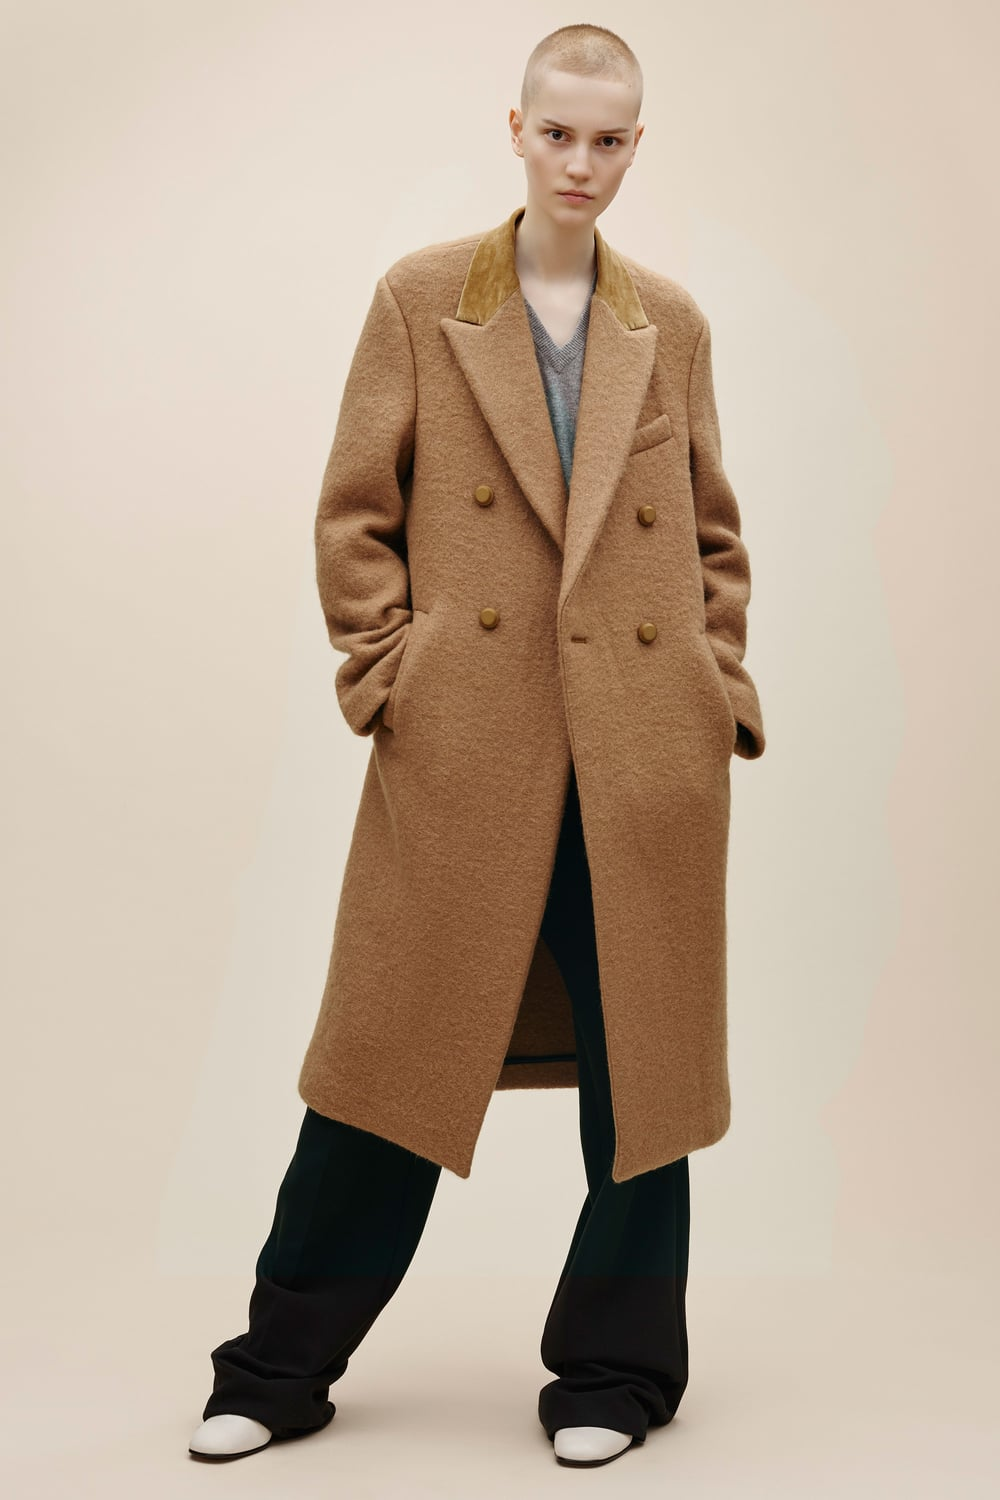 joseph-pre-fall-2016-lookbook-04.jpg